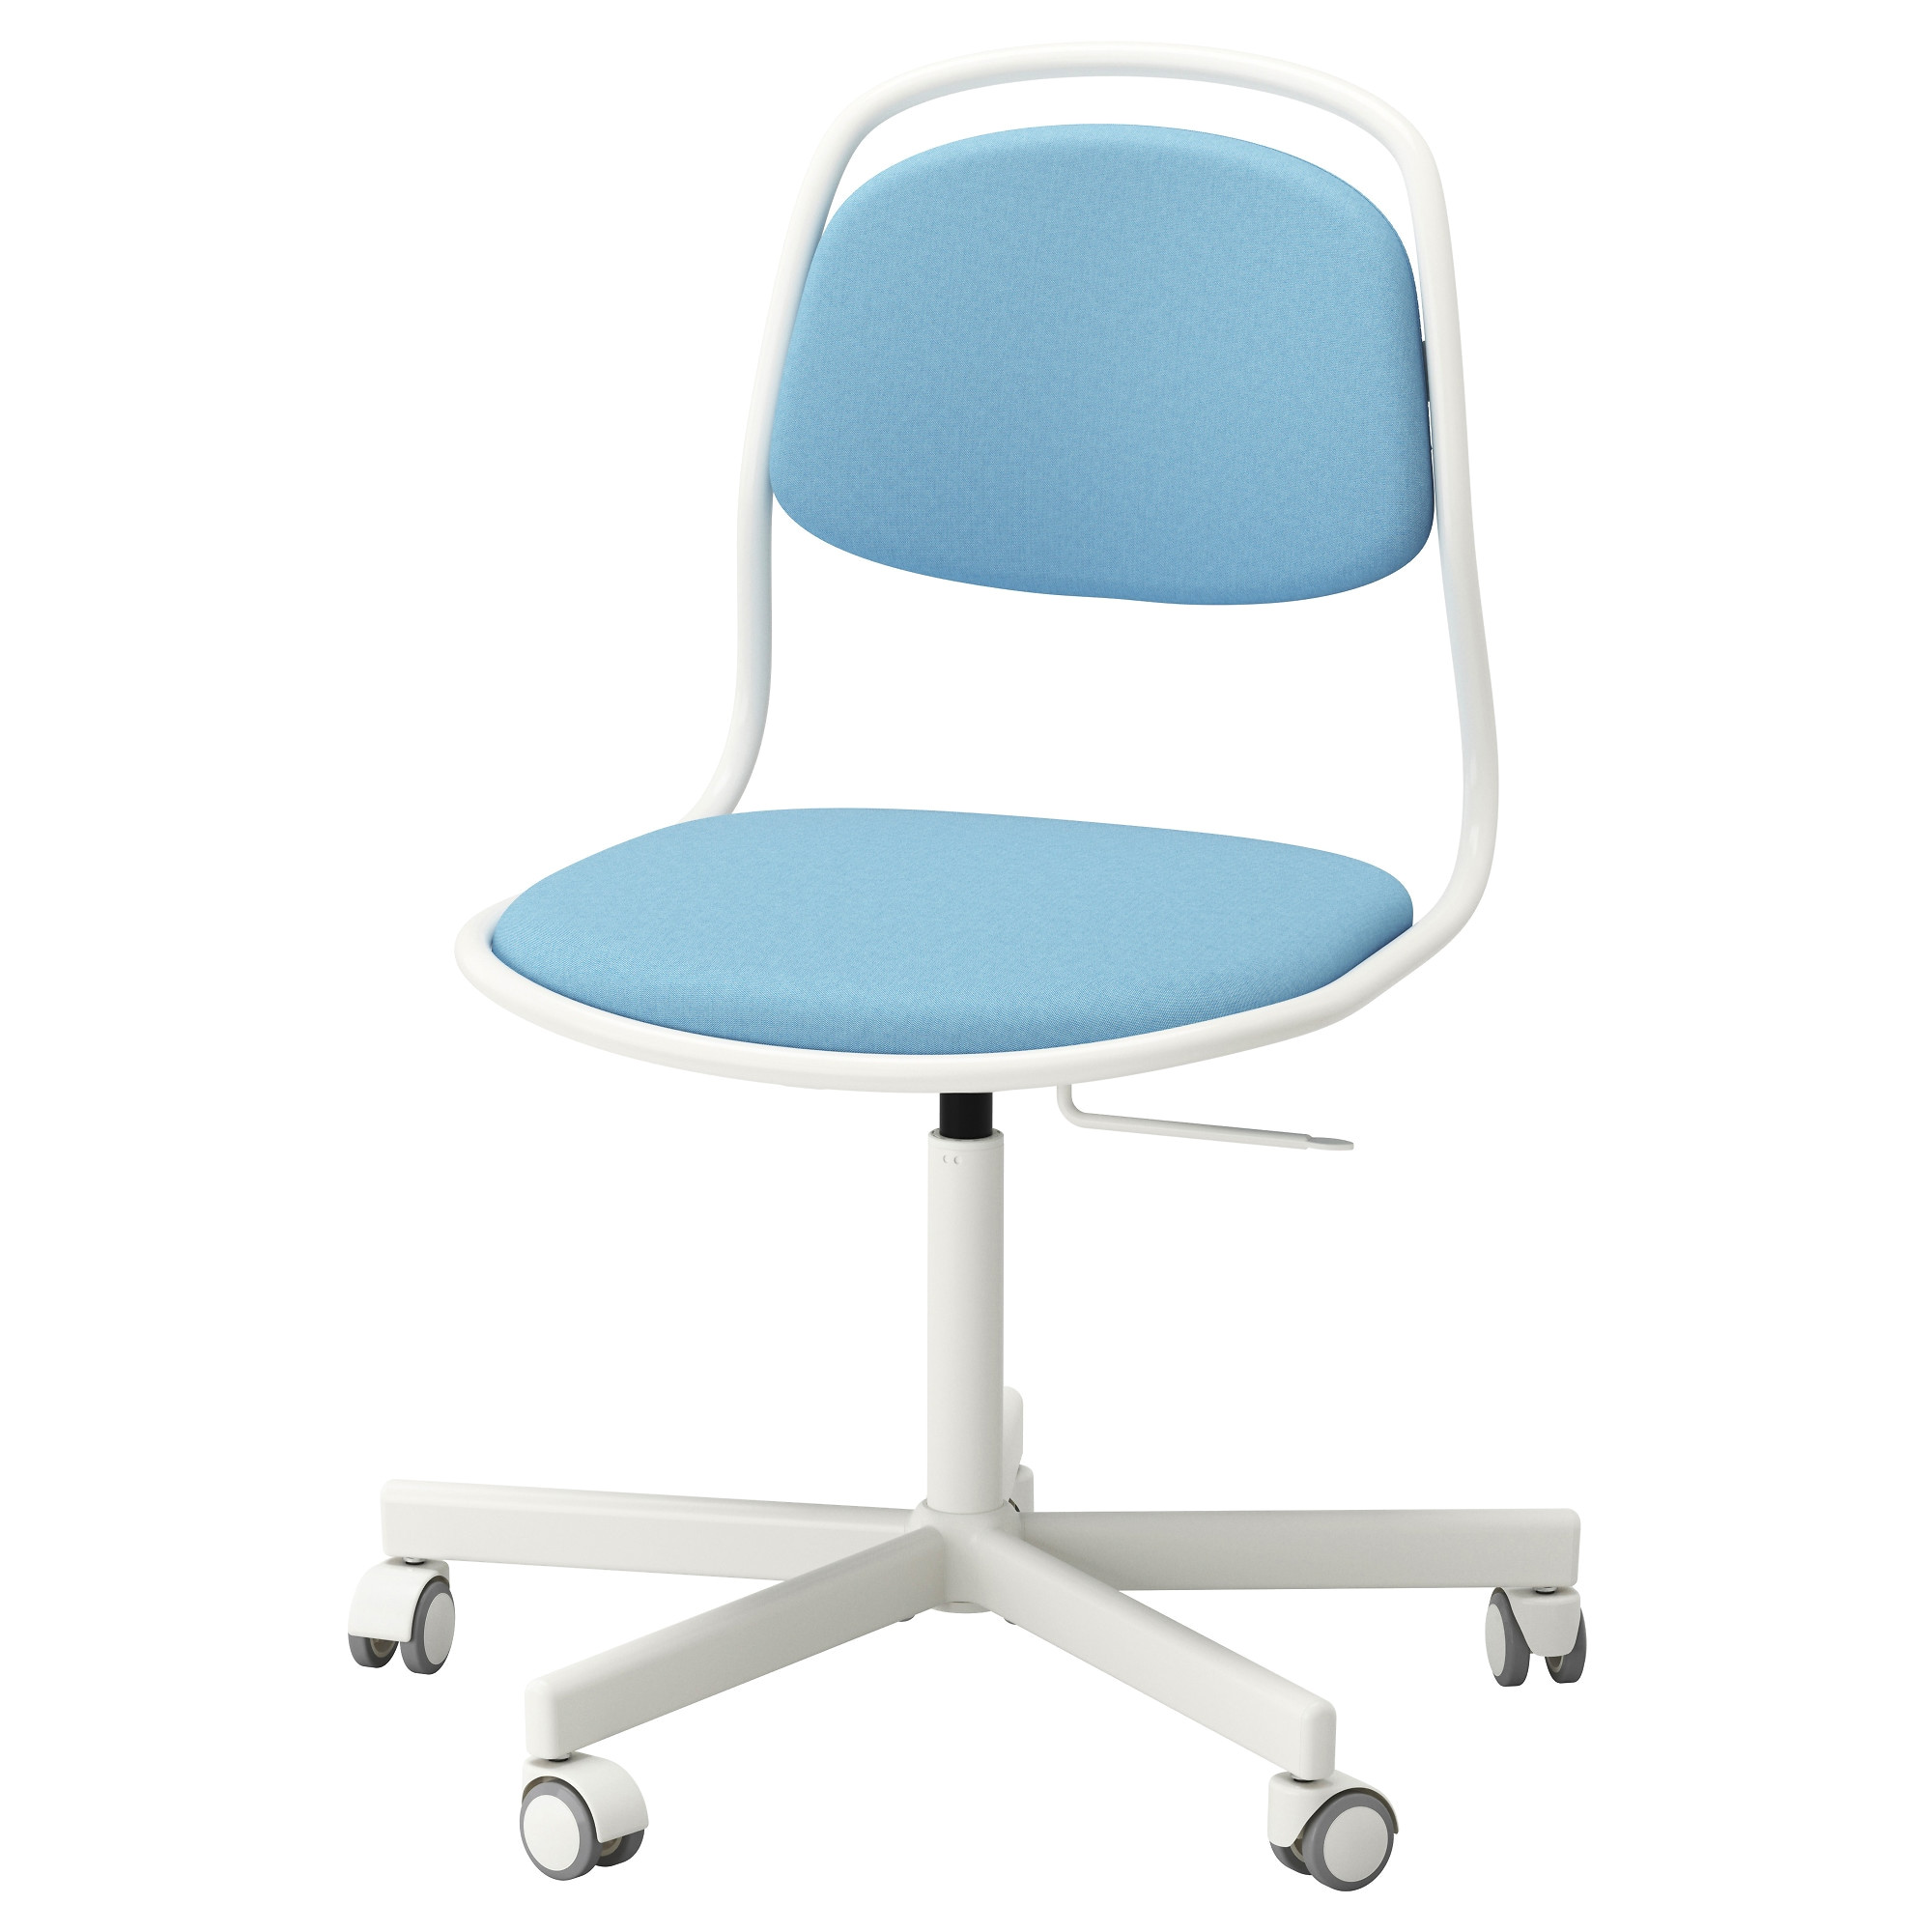 ikea a rfja ll sporren swivel chair you sit comfortably since the chair is adjustable in height